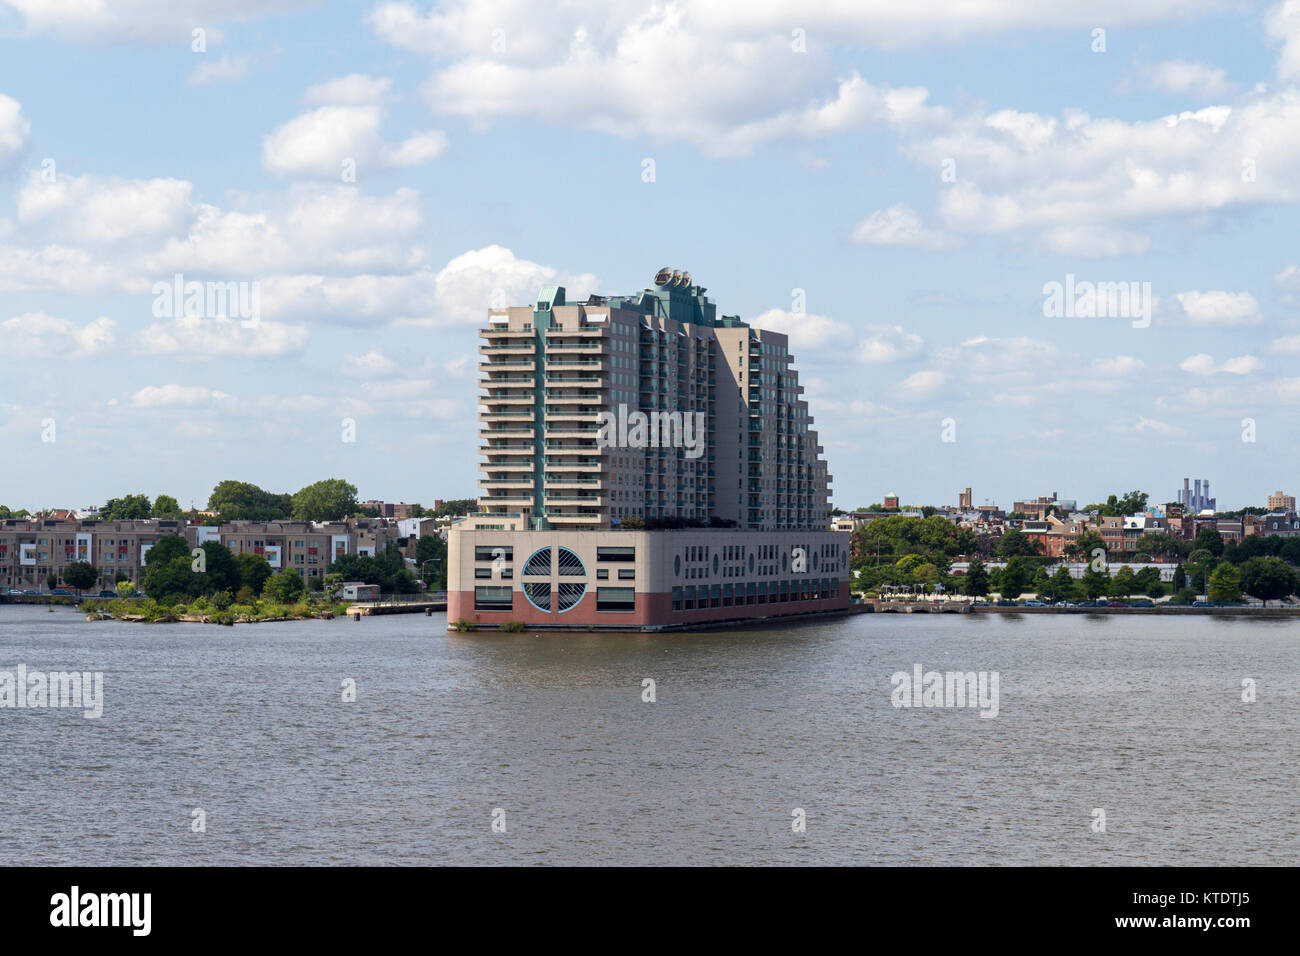 The Residences at Dockside Condominiums viewed from the deck of the USS New Jersey, Delaware River, Philadelphia, - Stock Image